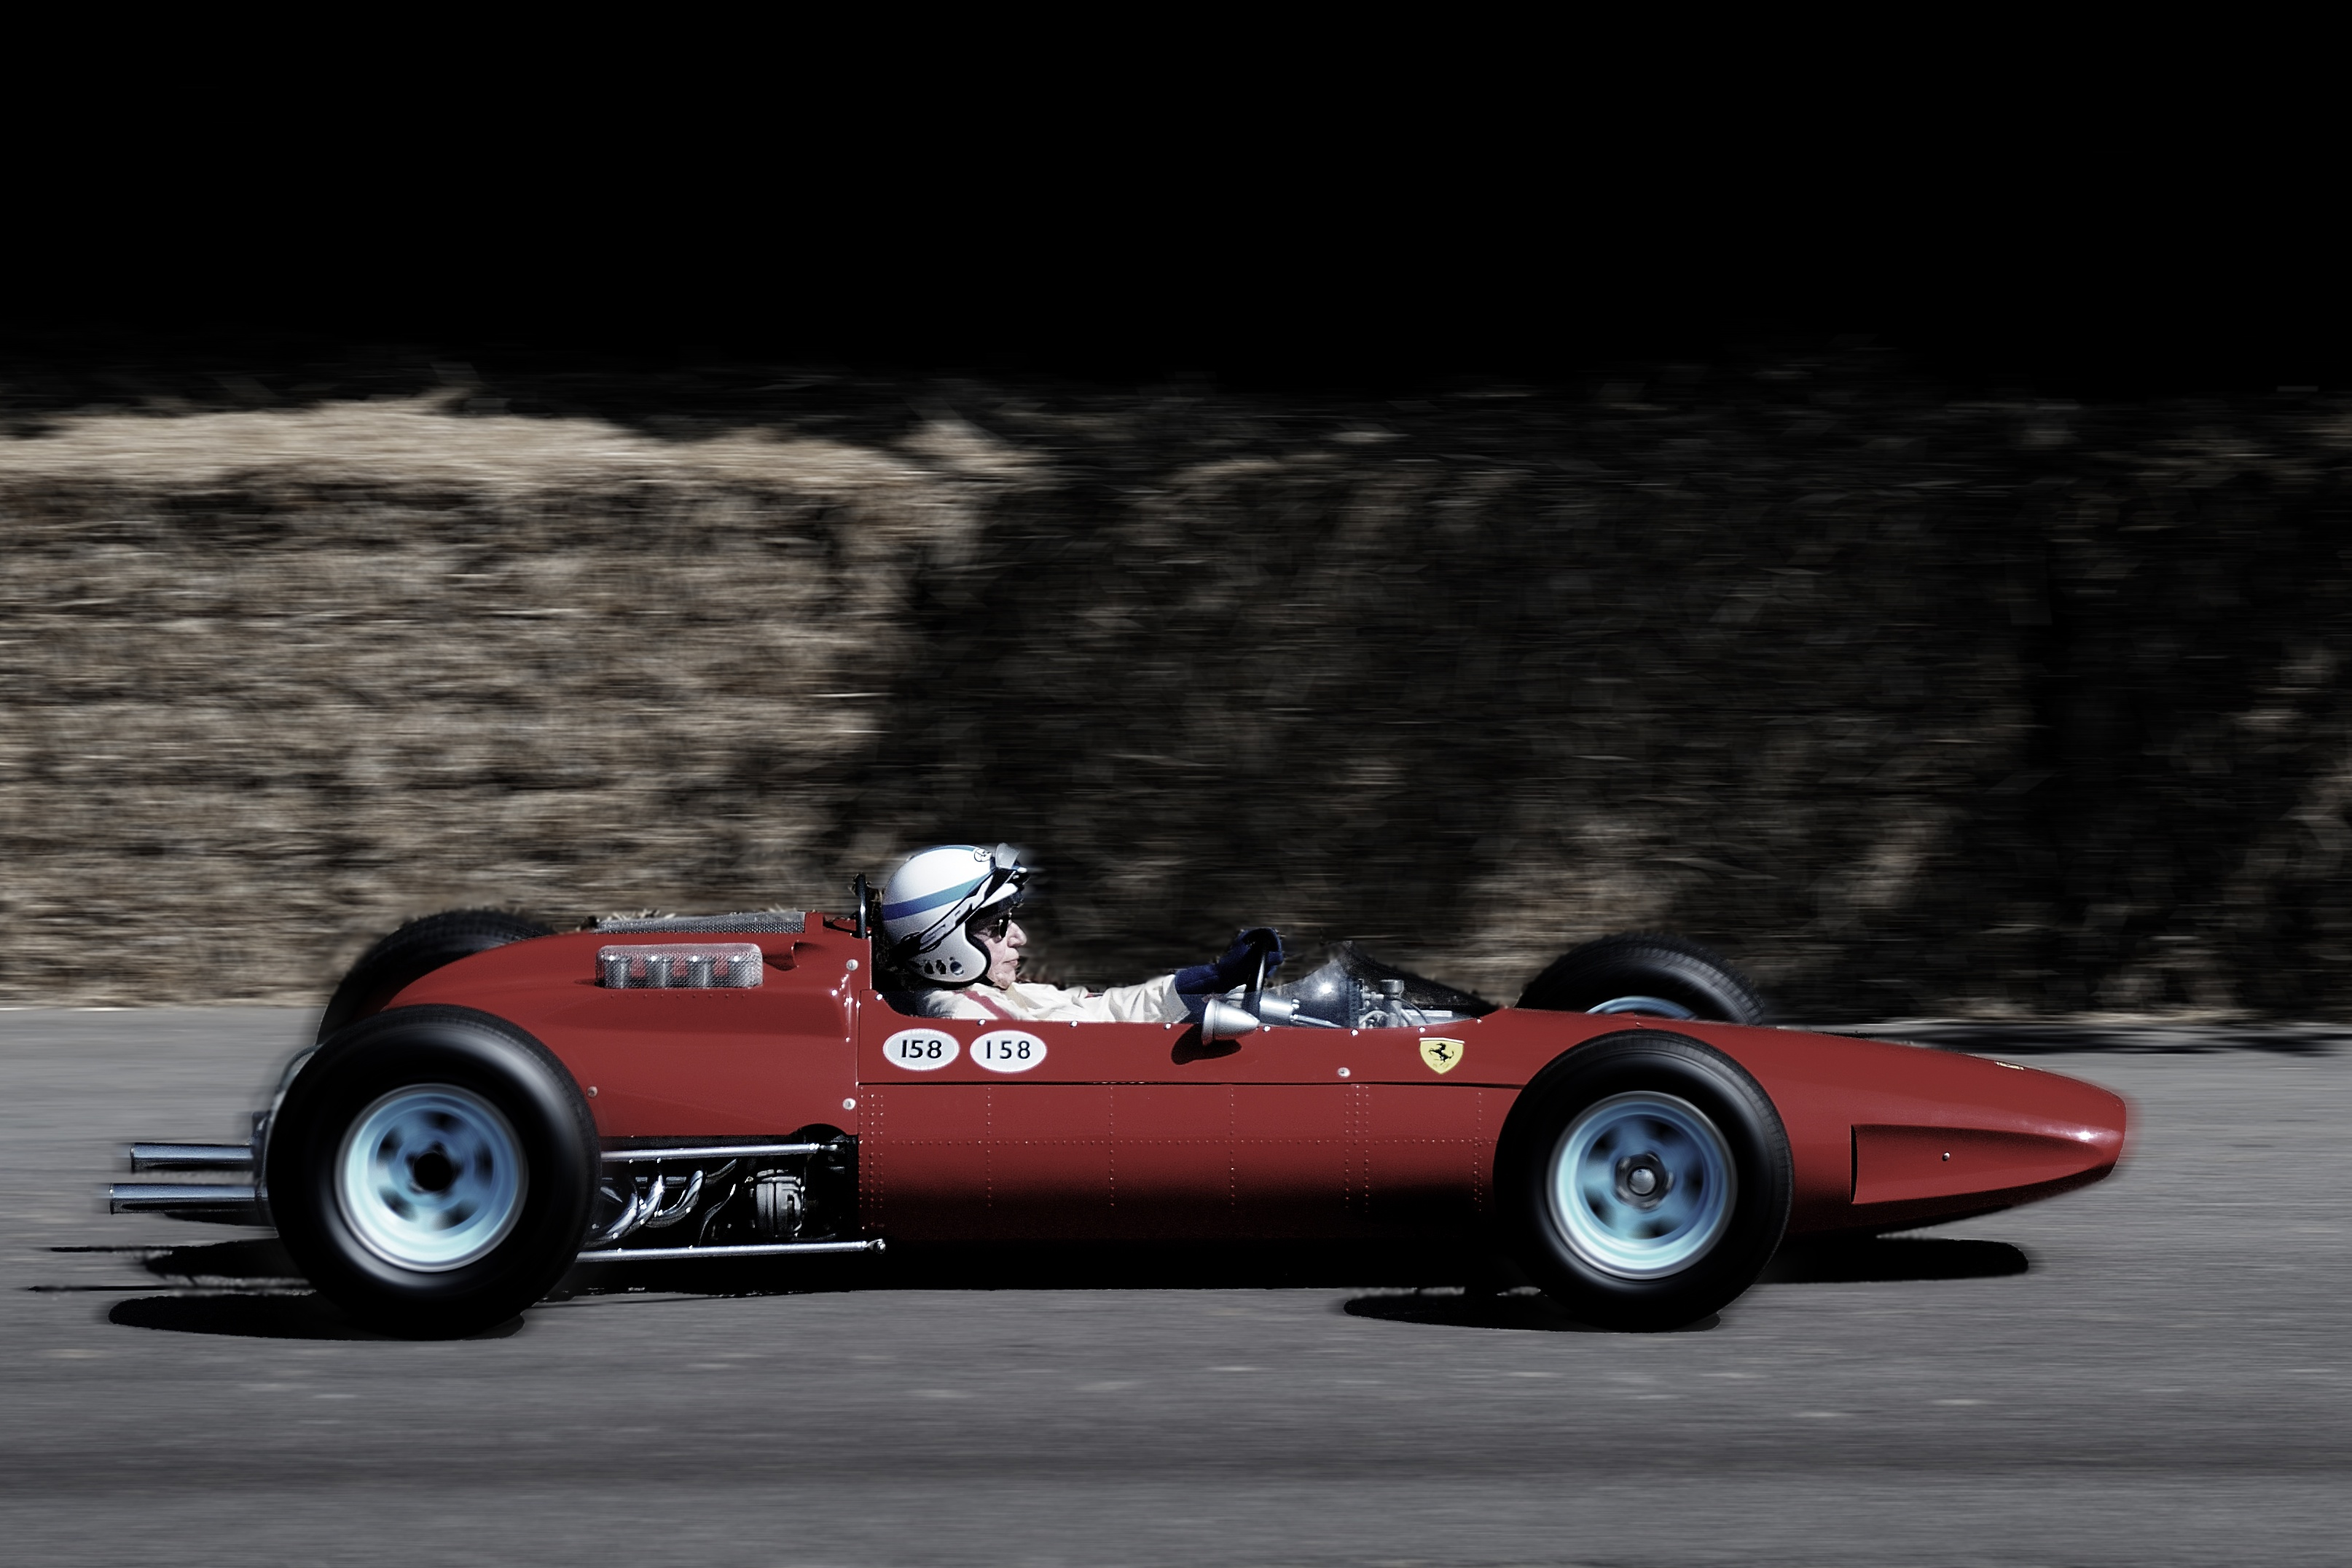 Surtees Ferrari 158 Goodwood July 2010